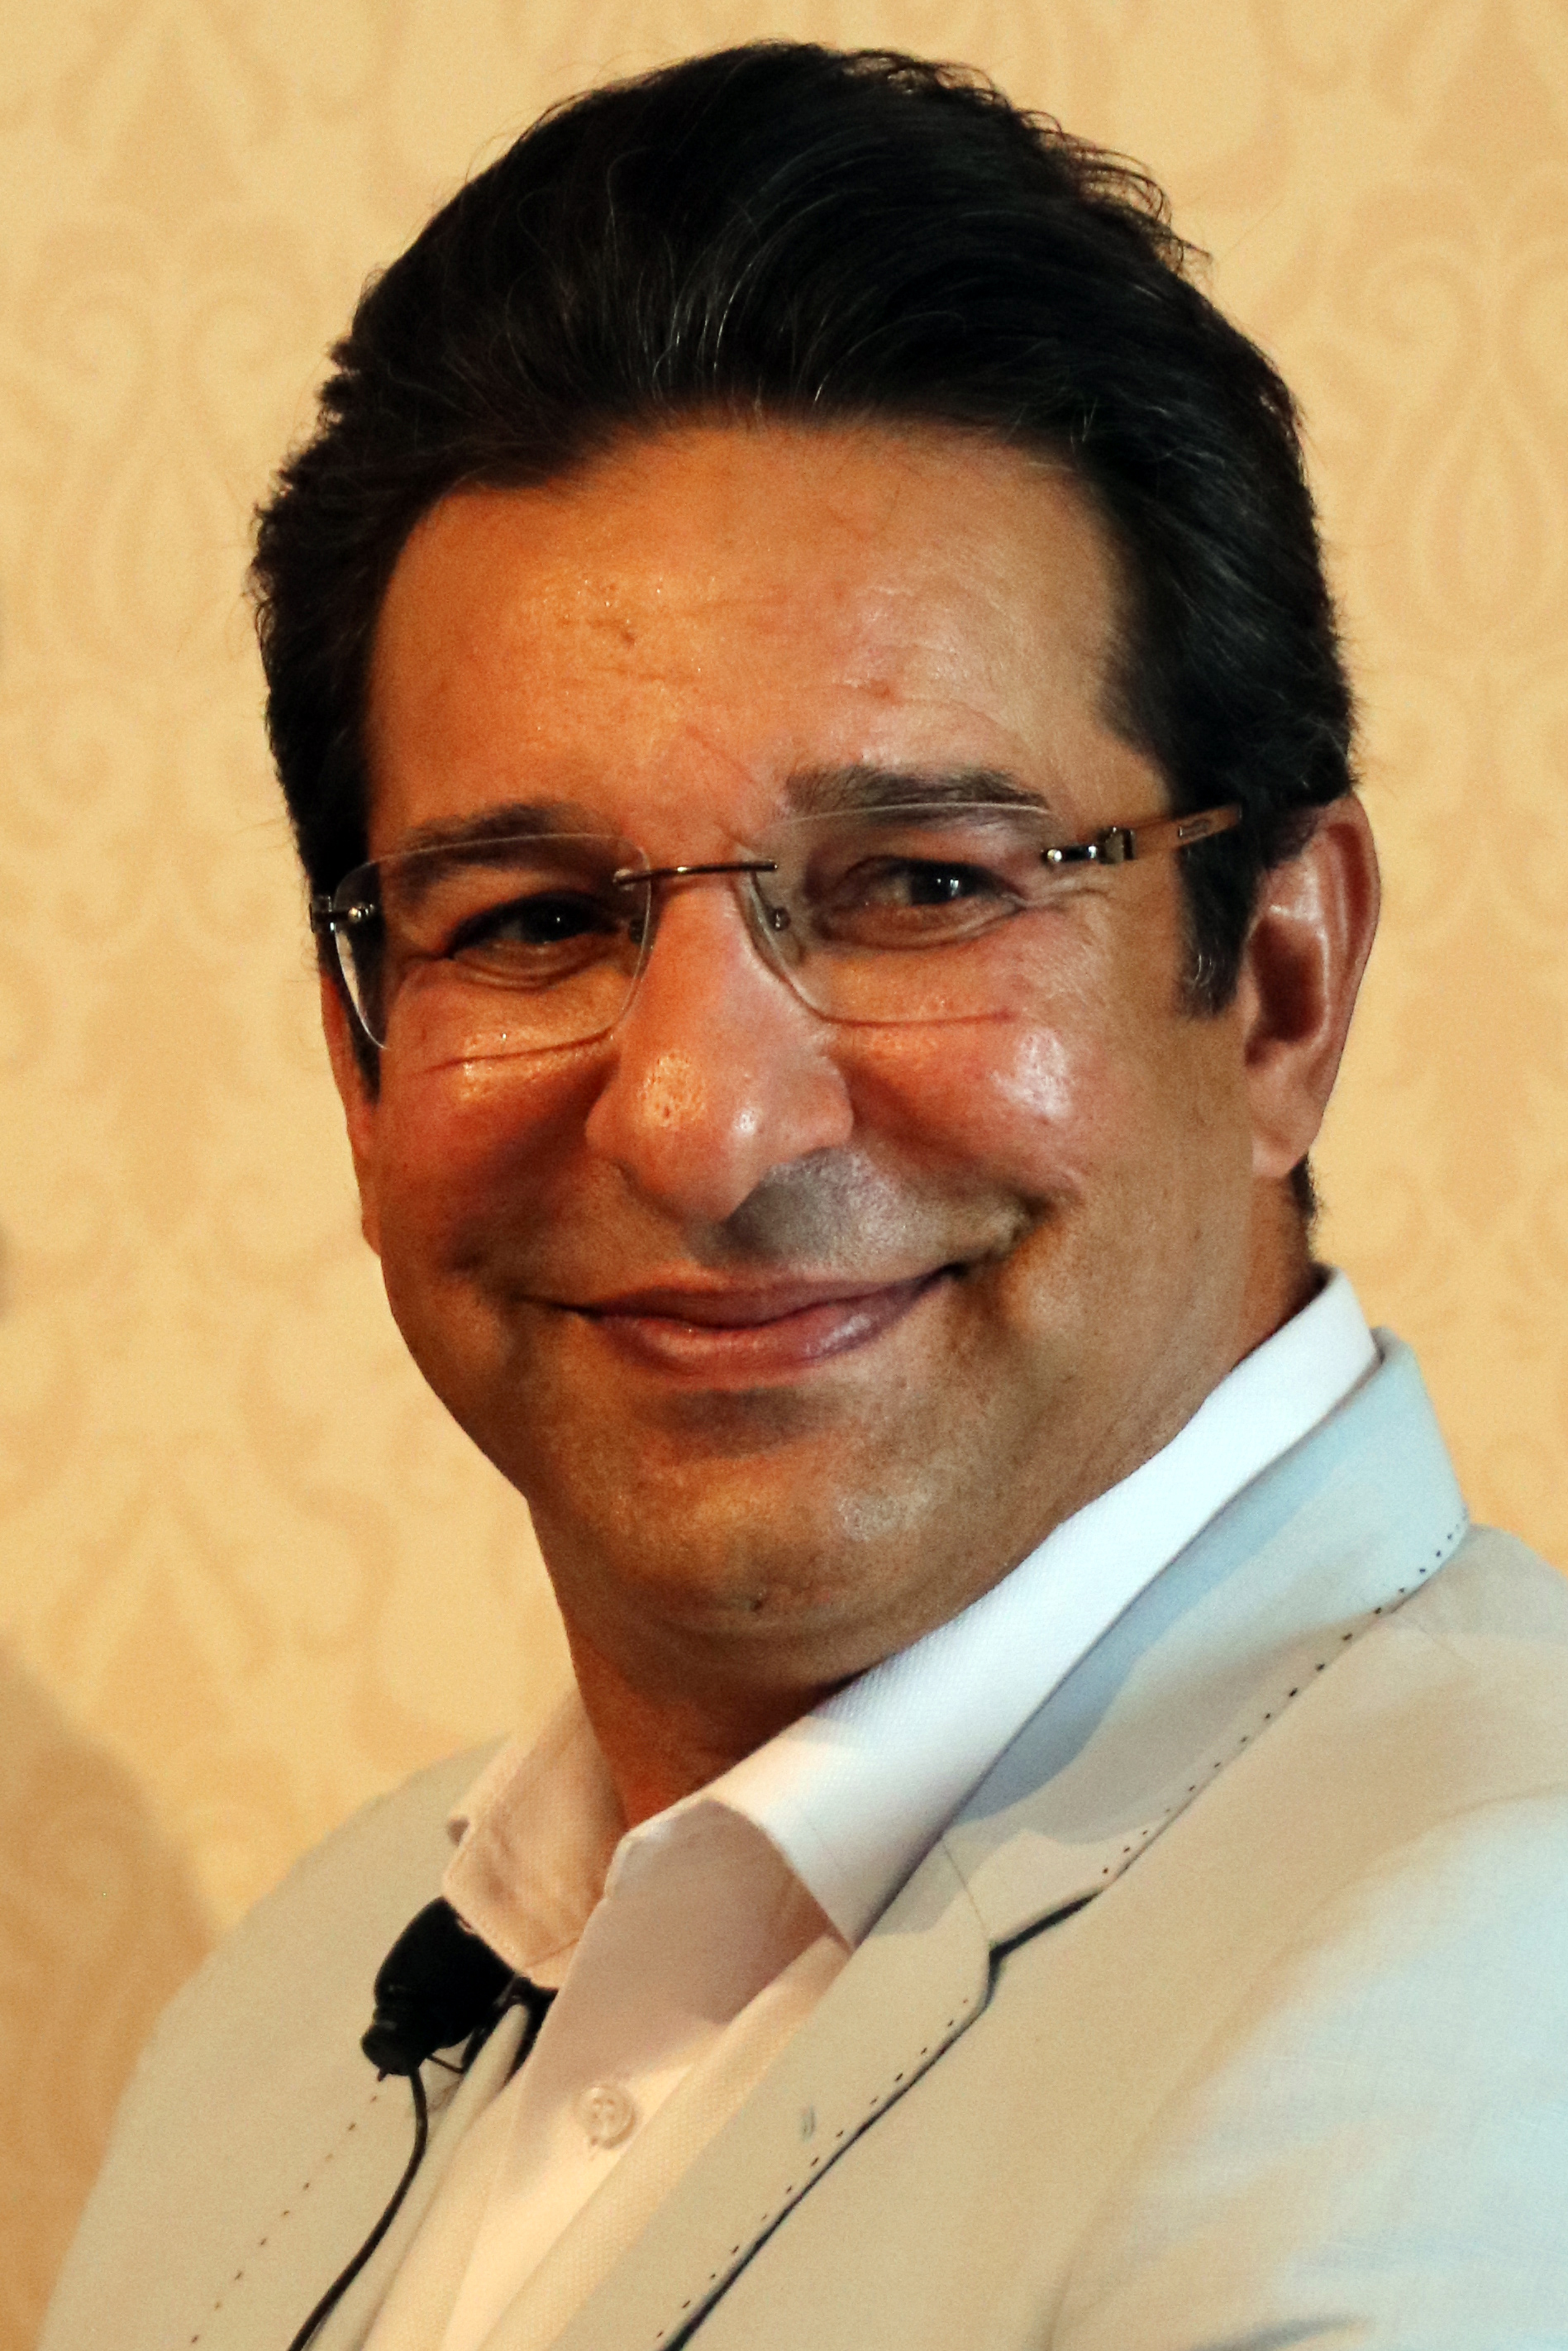 The 52-year old son of father Chaudhry Mohammad Akram and mother(?) Wasim Akram in 2018 photo. Wasim Akram earned a  million dollar salary - leaving the net worth at 23 million in 2018